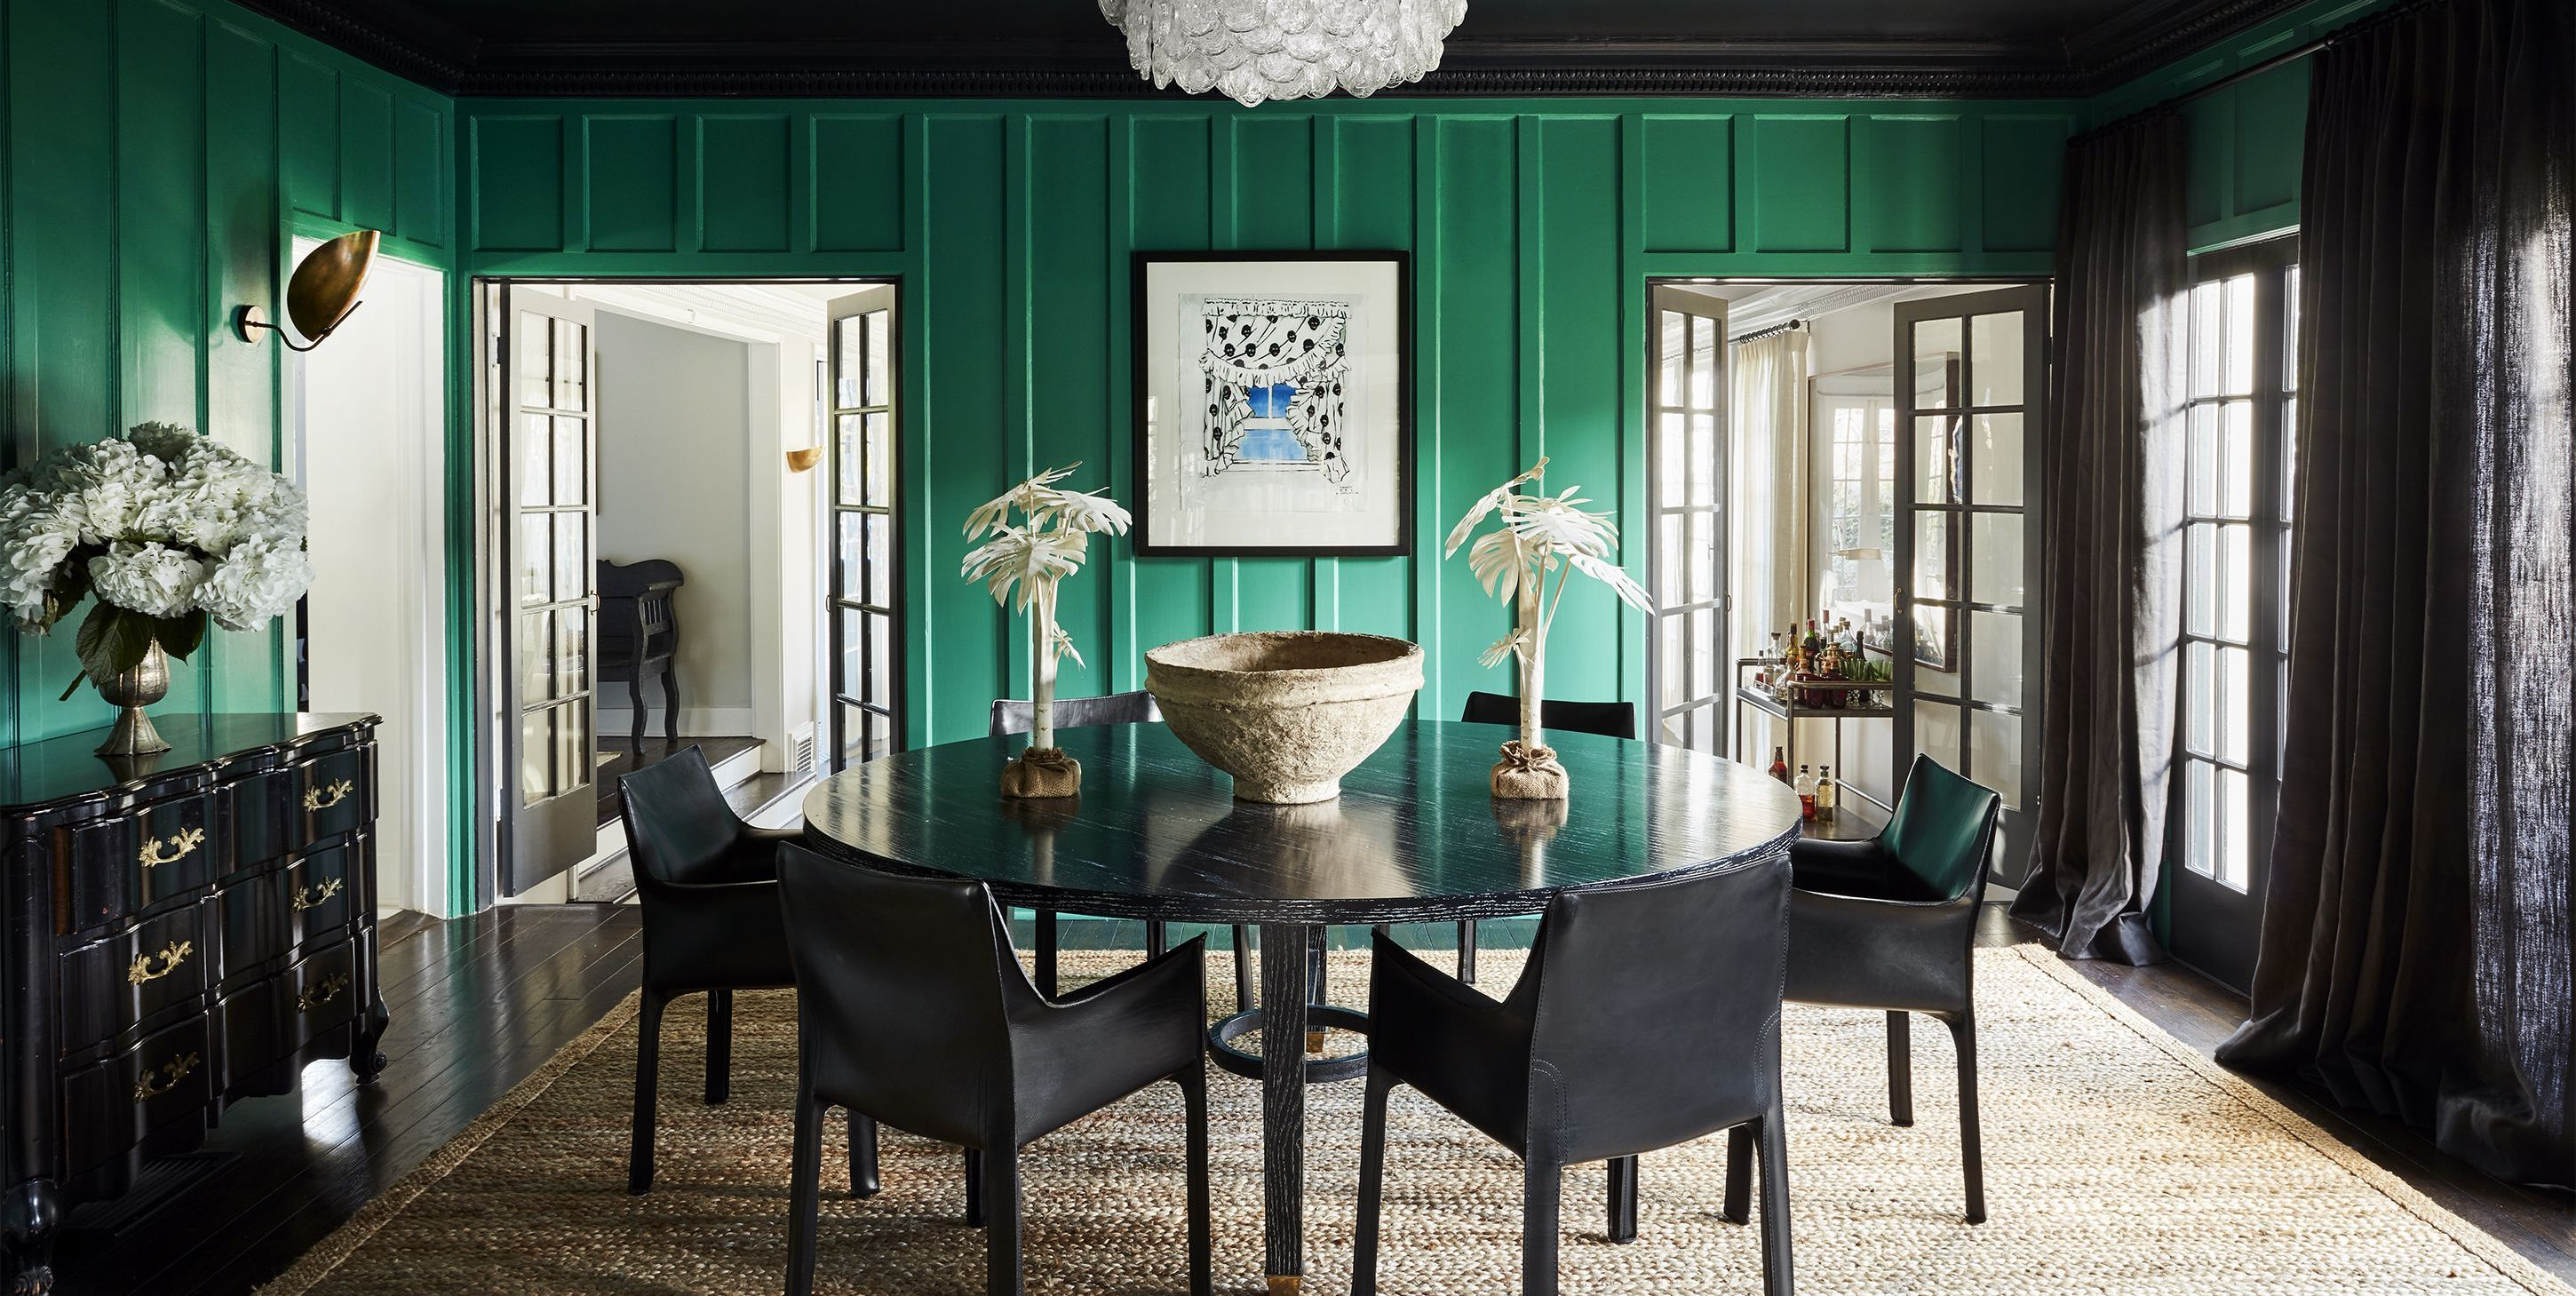 home decorating ideas and tips  50  Best Home Decorating Ideas - How To Design A Room